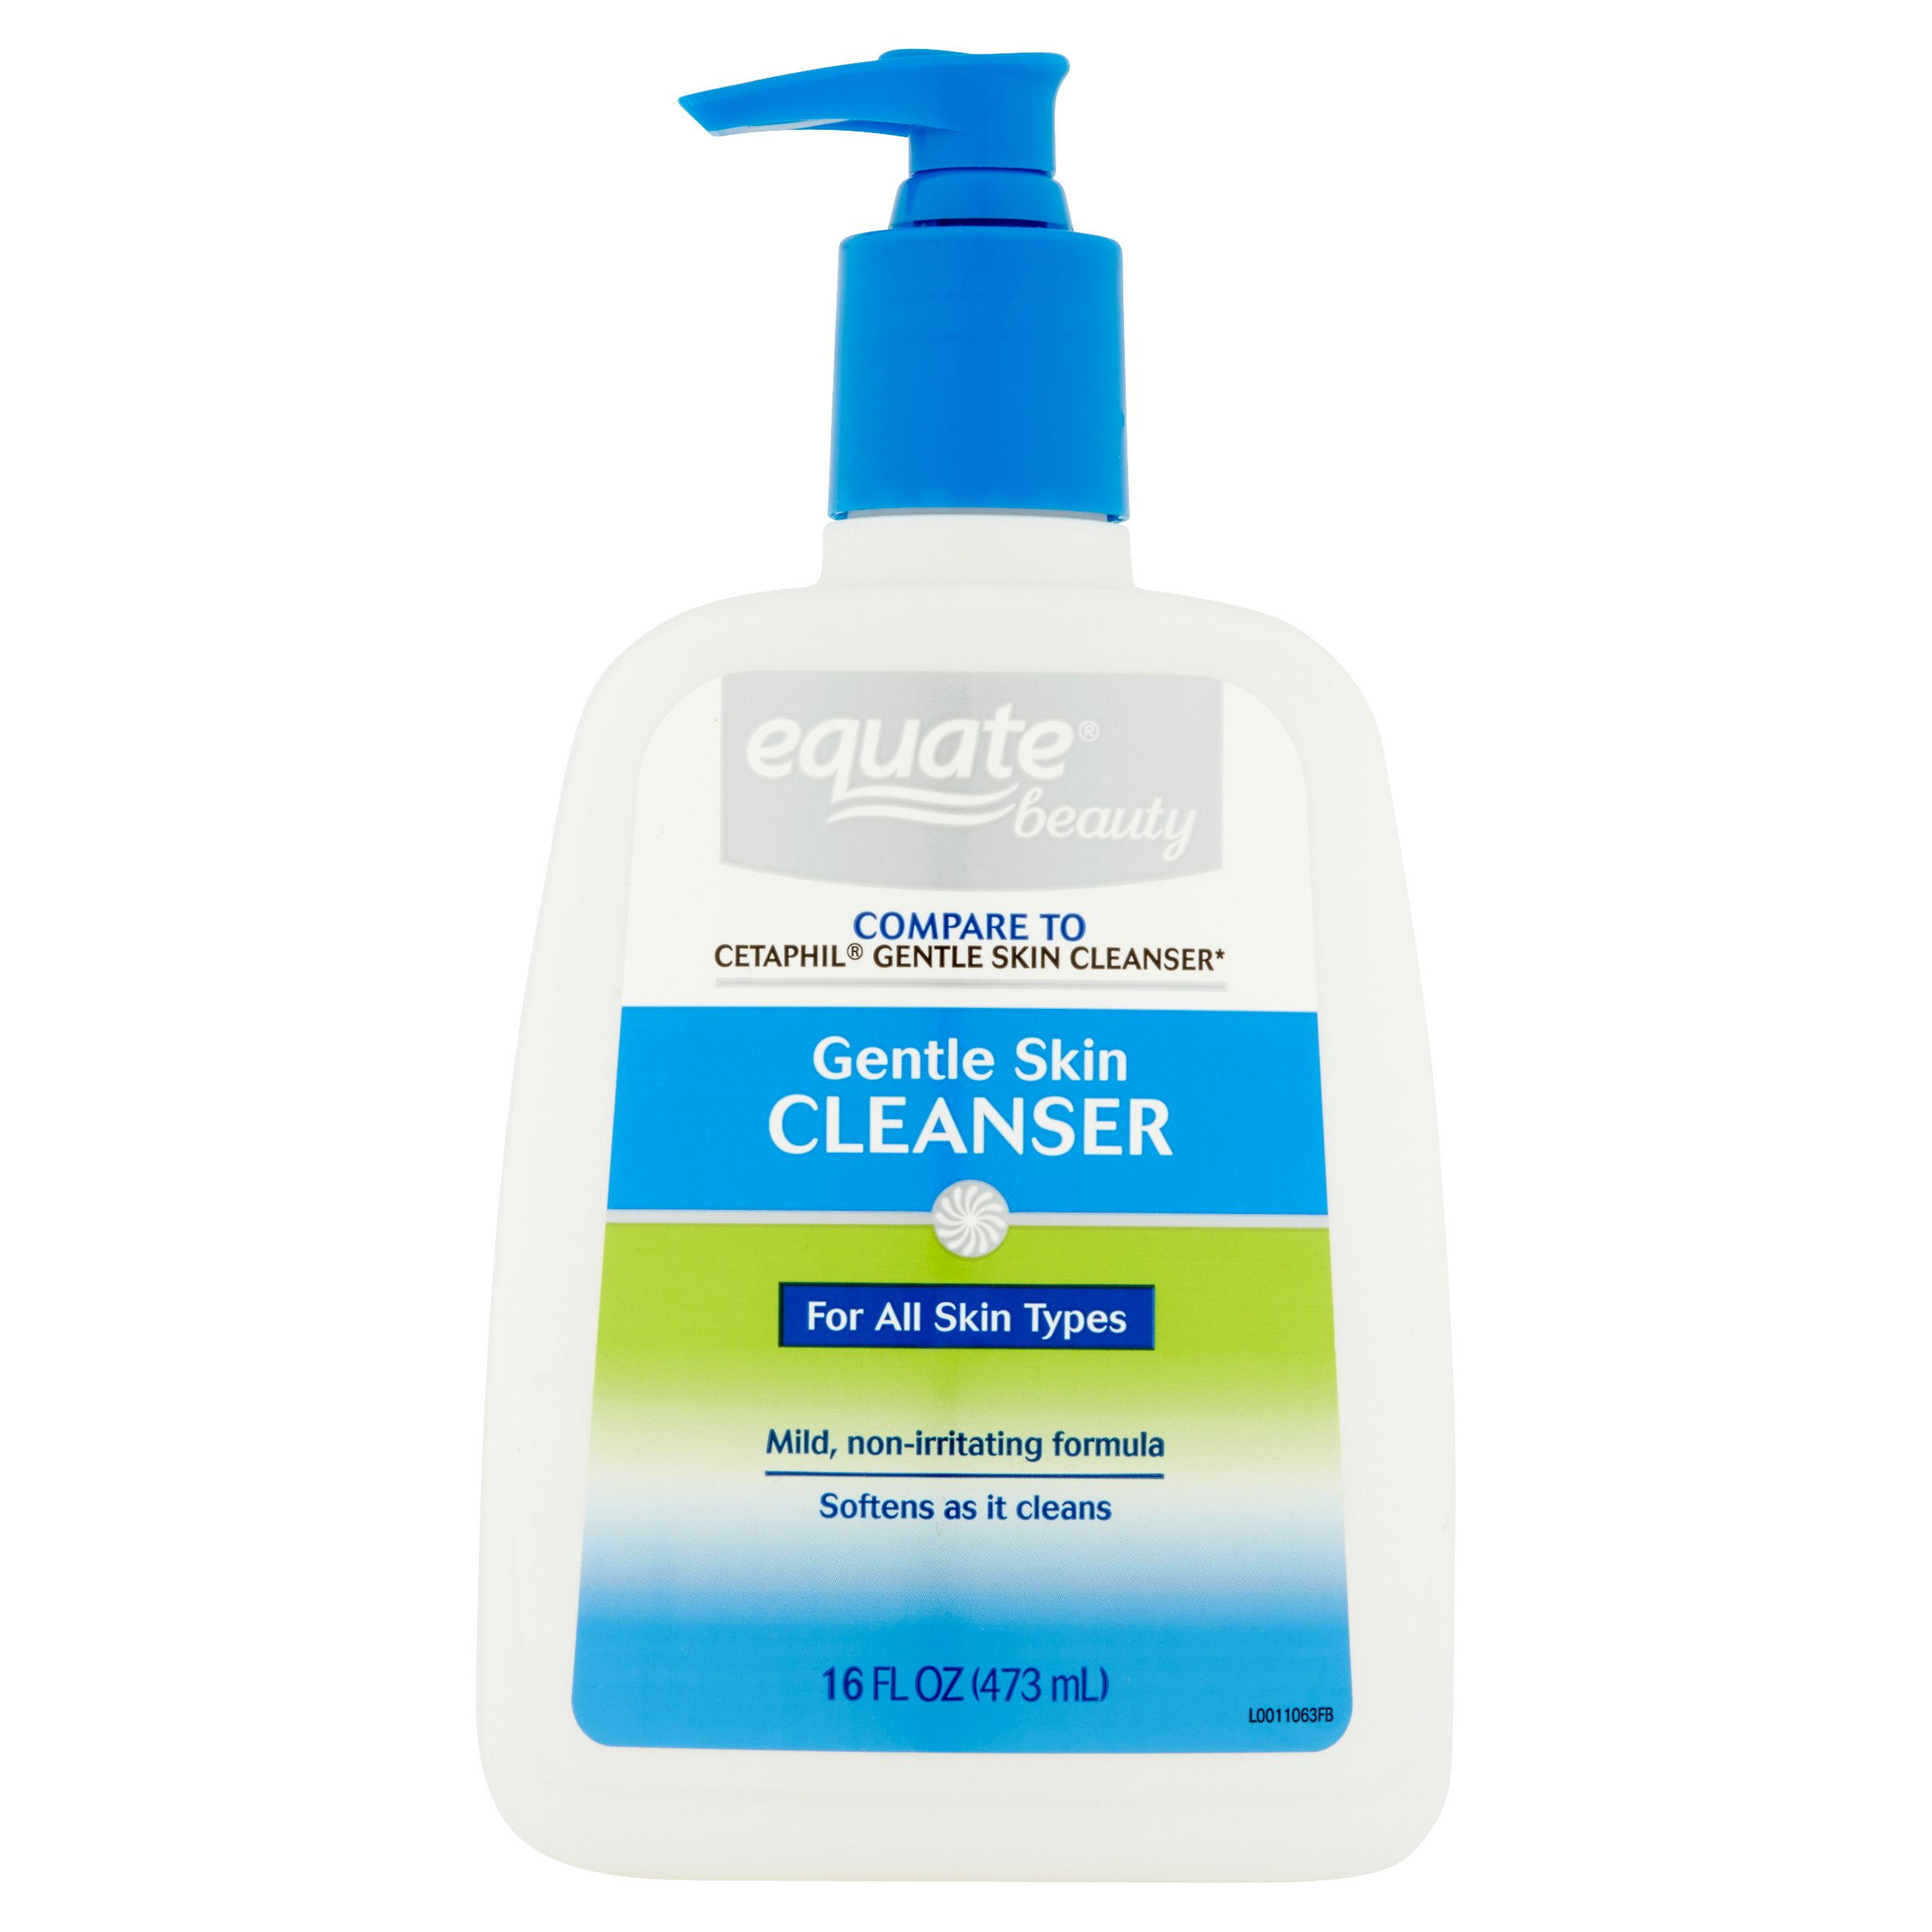 Gentle Skin Cleanser by equate #7